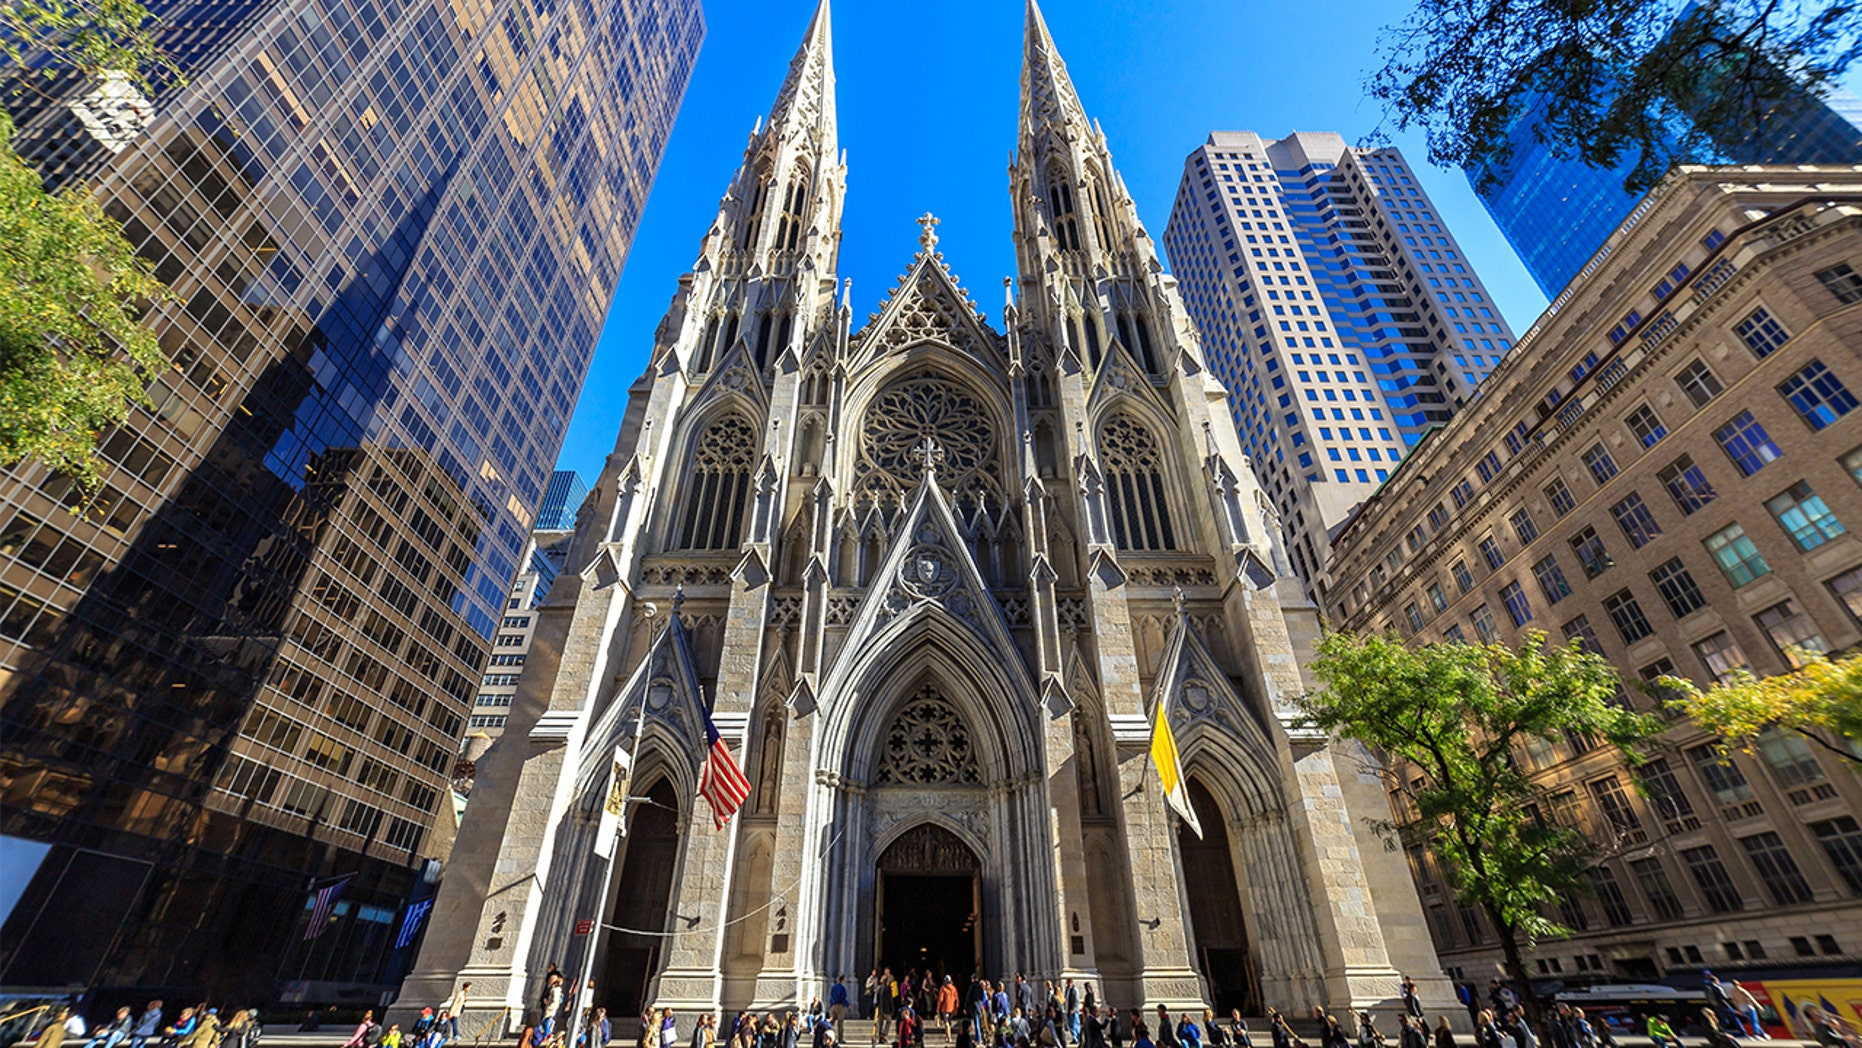 Westlake Legal Group St-Patricks-Cathedral- Man caught with 2 gas cans entering St. Patrick's Cathedral in NYC, police say Stephen Sorace Nicole Darrah fox-news/us/us-regions/northeast/new-york fox-news/us/disasters/fires fox-news/us/crime/police-and-law-enforcement fox news fnc/us fnc fbc85cda-02b6-52be-b277-7de089311f66 article